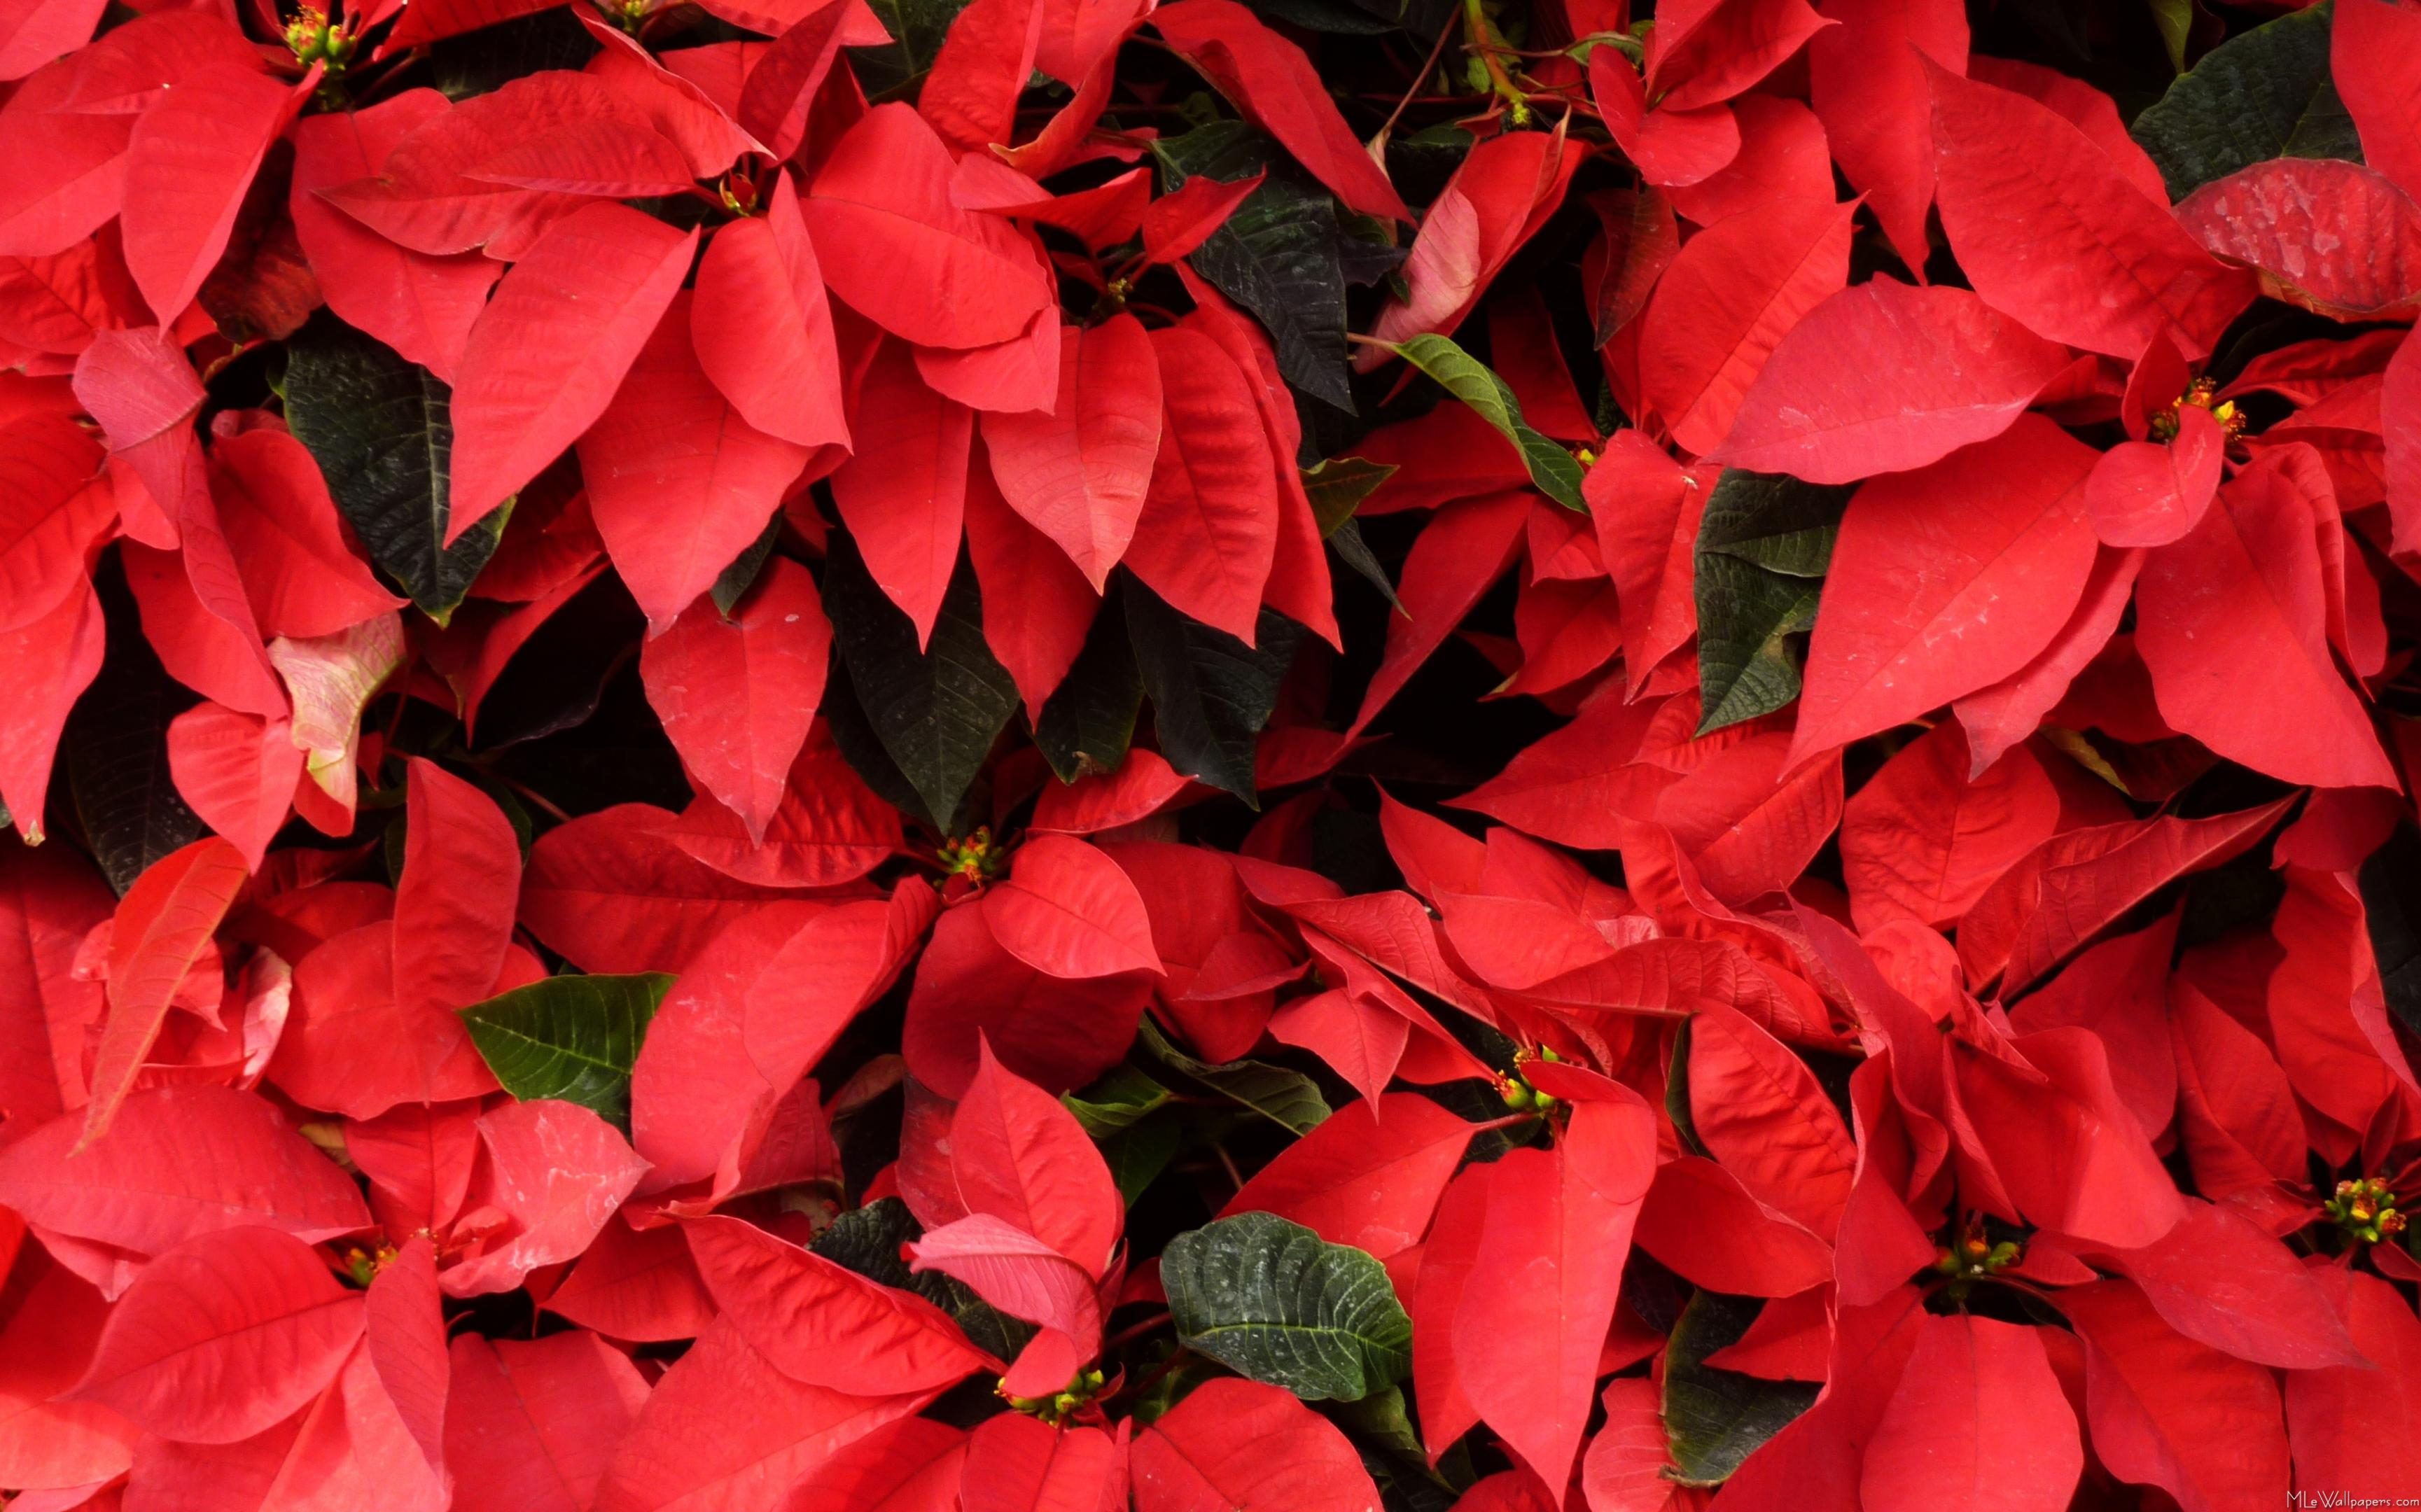 or red poinsettia - photo #18